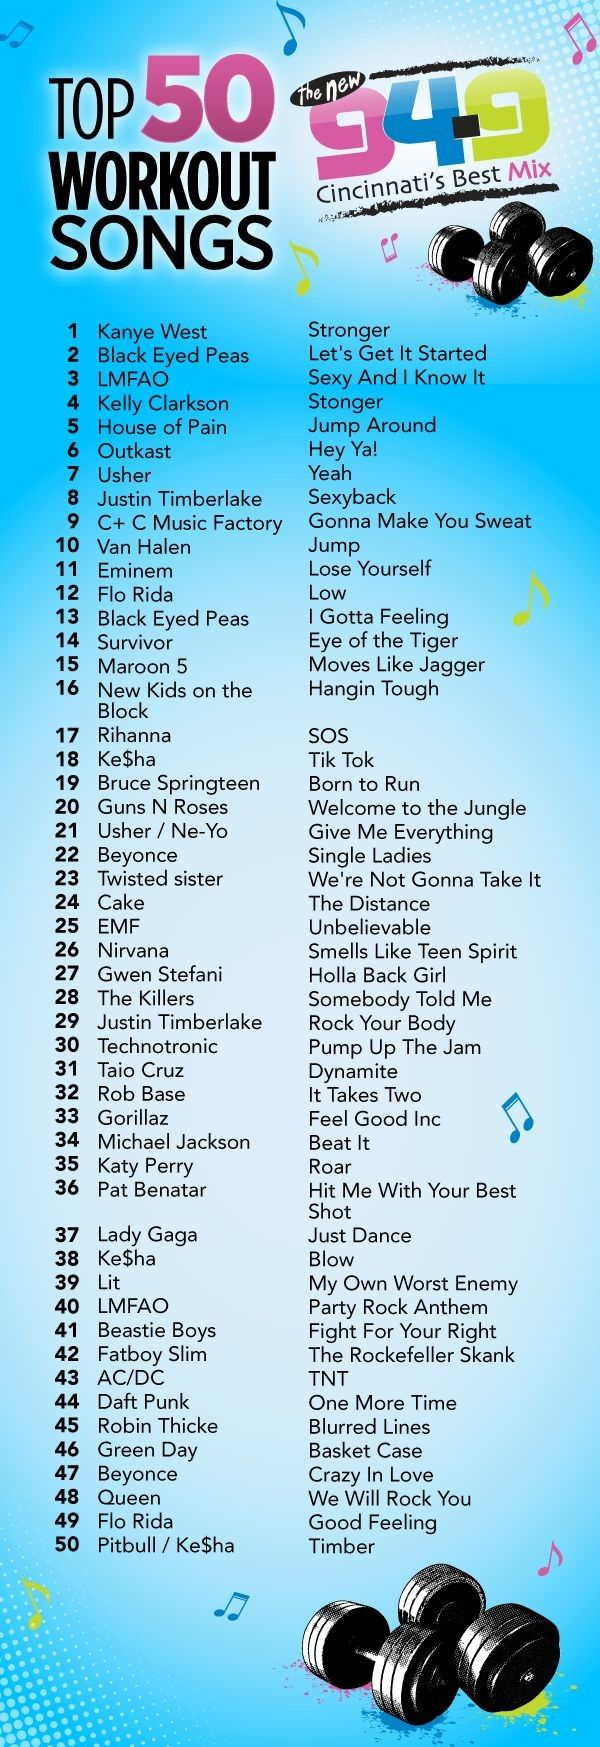 Everything you need to know about zumba Want your workout to be fun? Need a new playlist for working out? Check out these Top 50 Workout Songs! #workout #fitness #songs